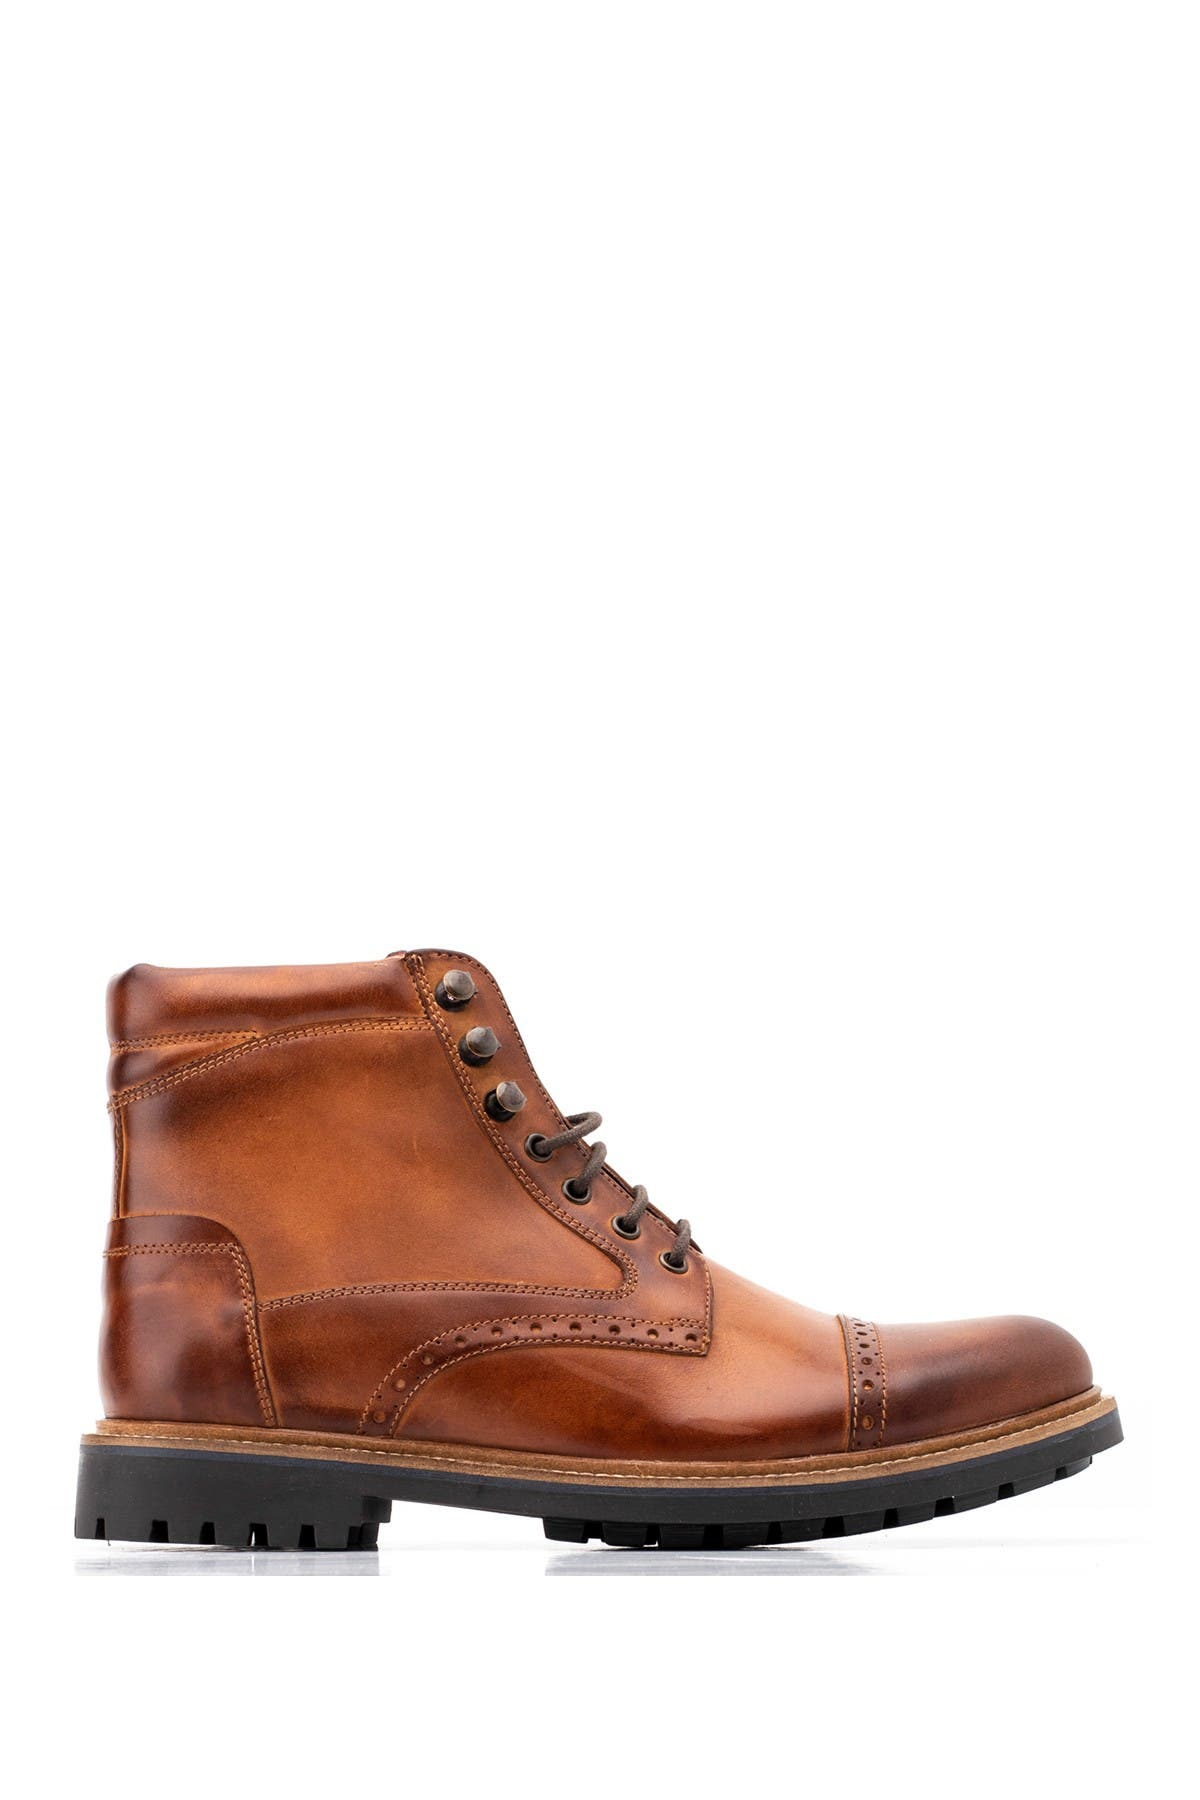 Image of Base London Quail Leather Brogue Boot